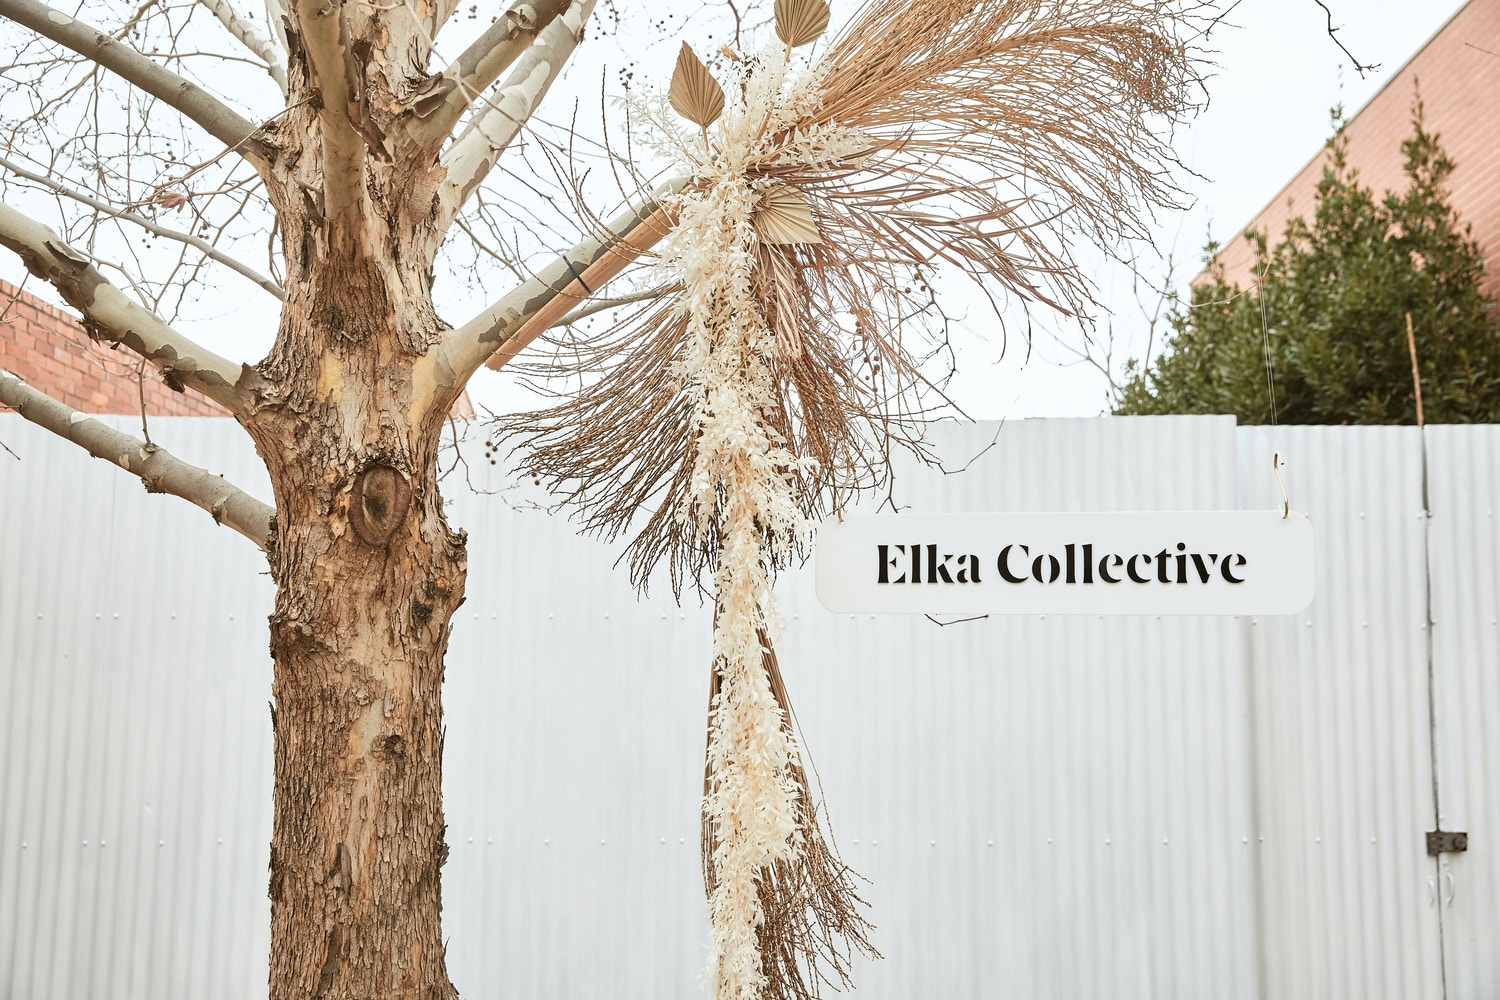 ELKA COLLECTIVE'S WHIMSICAL WONDERLAND